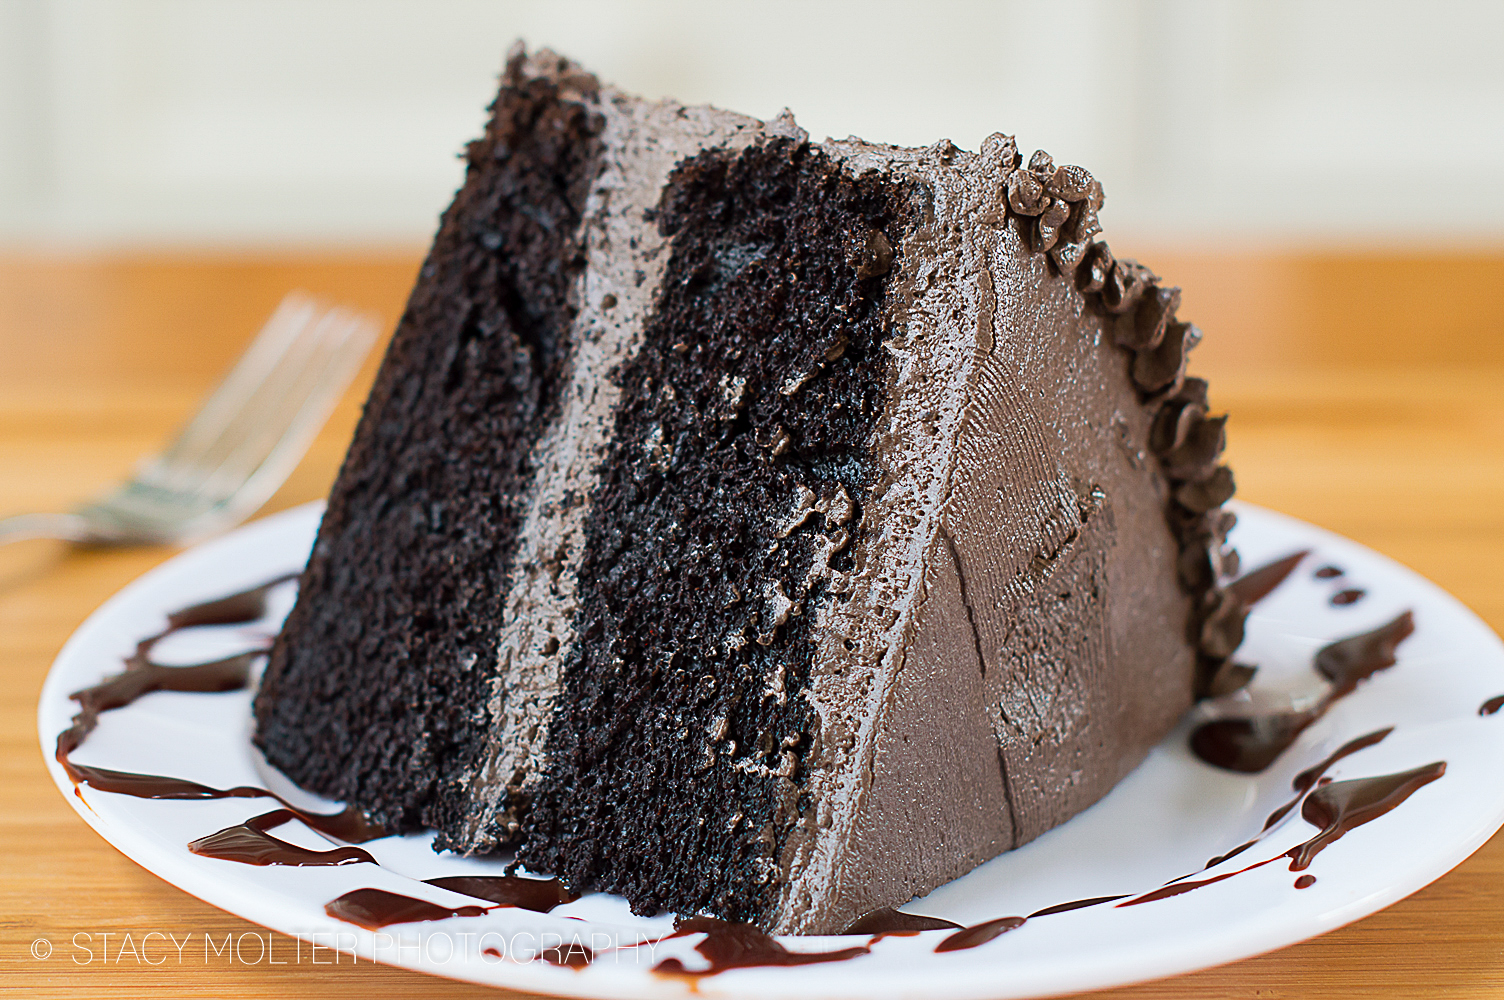 Best Chocolate Cake Recipe Ever With Coffee